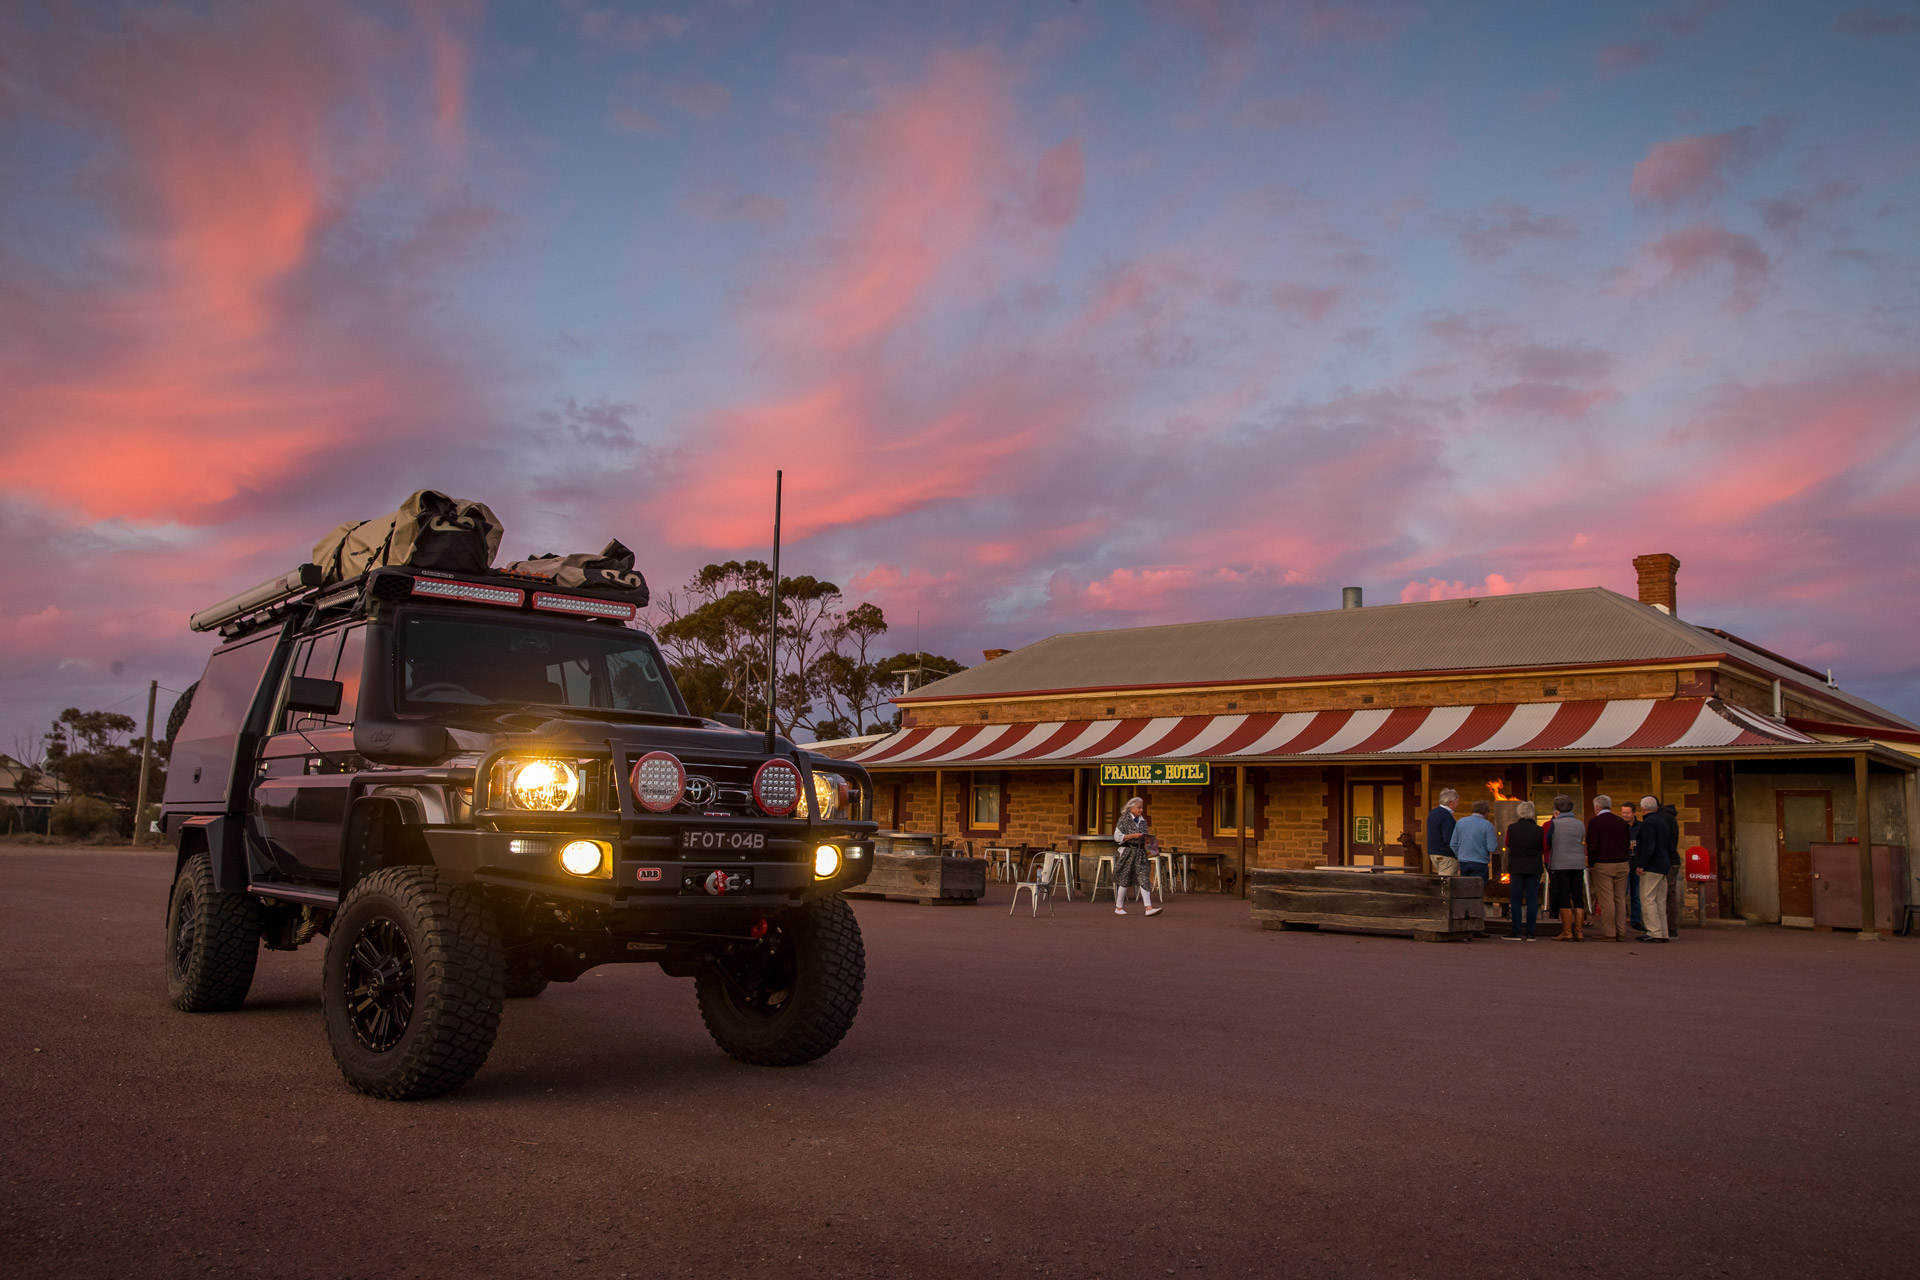 ROH Vapour wheels on 79 Series LandCruiser in front of local outback pub